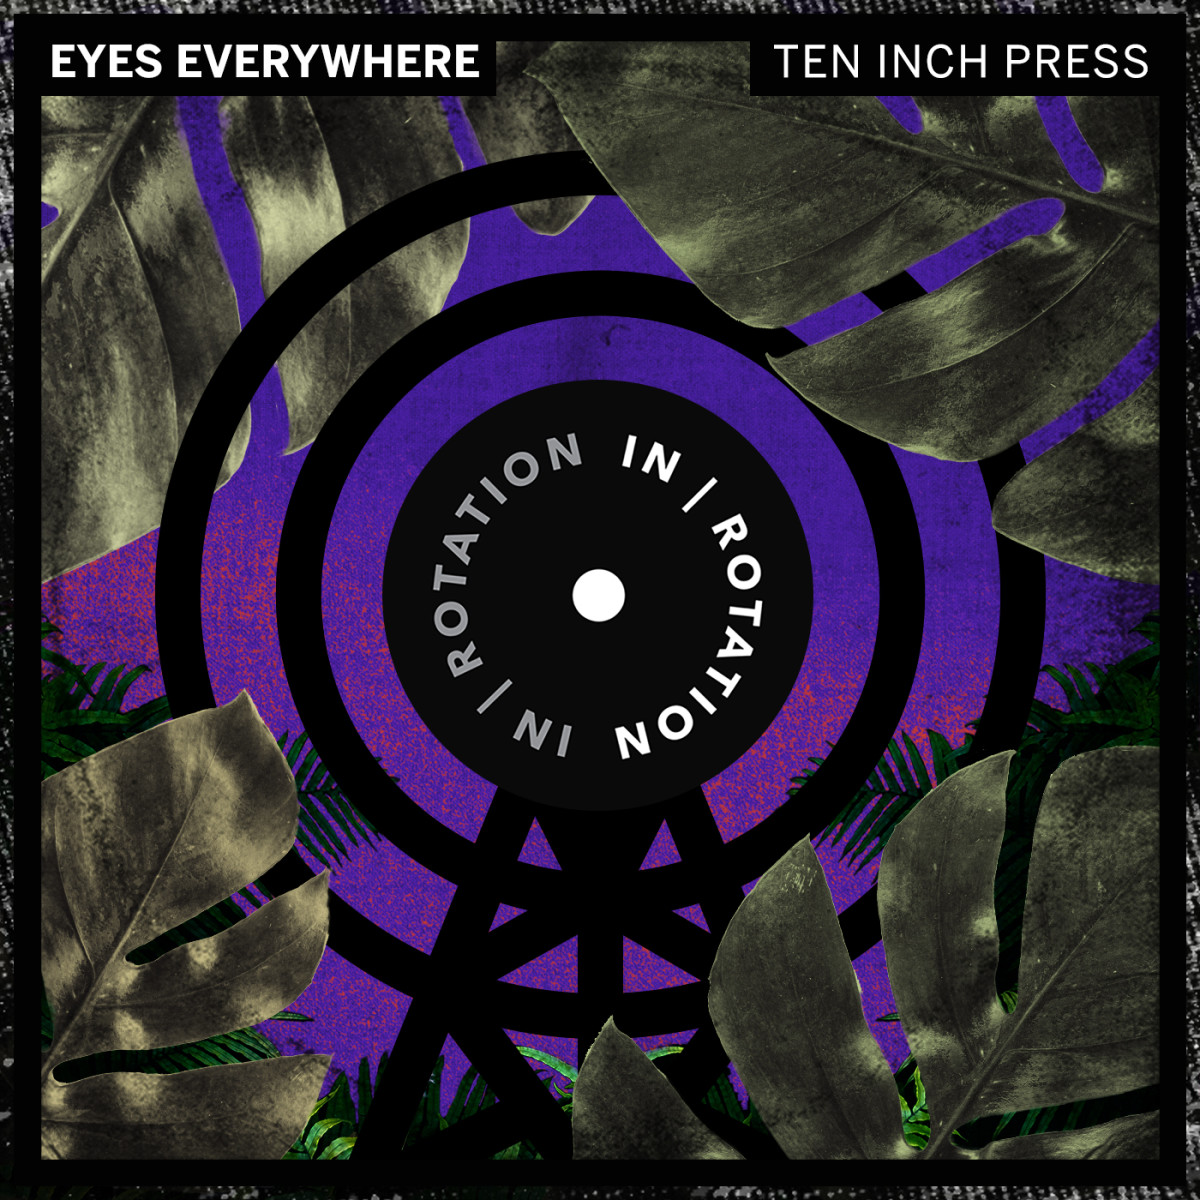 IR-EyesEverywhere-Cover6b